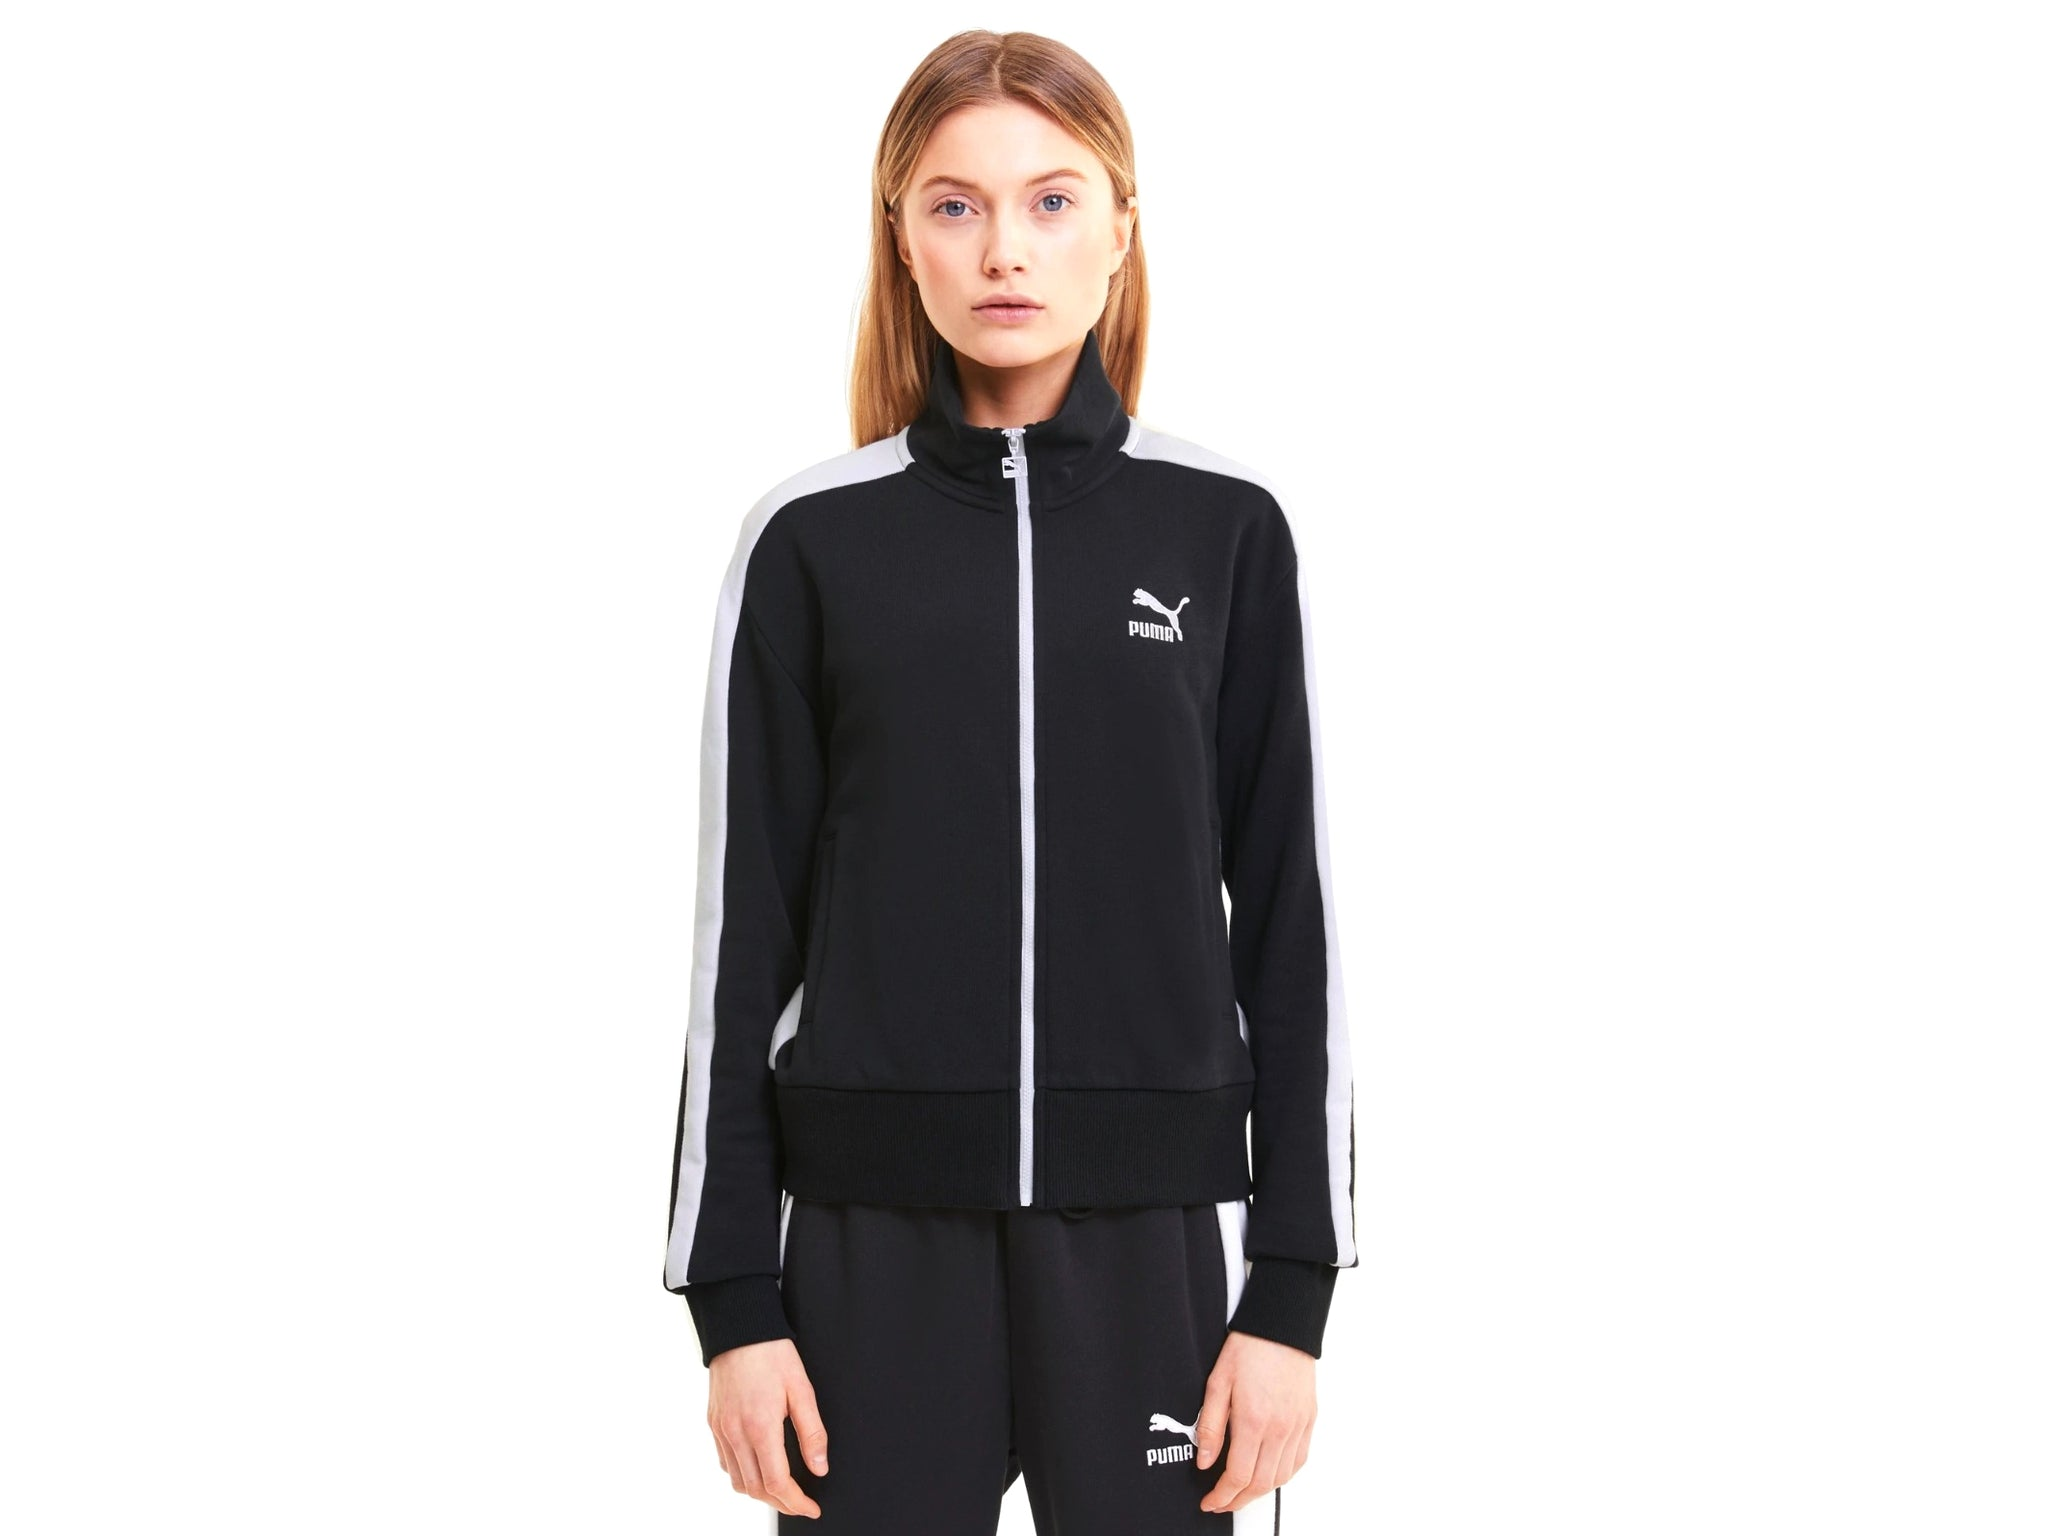 PUMA Classic T7 Track Jacket FT Felpa Zip Donna Black 597651 01